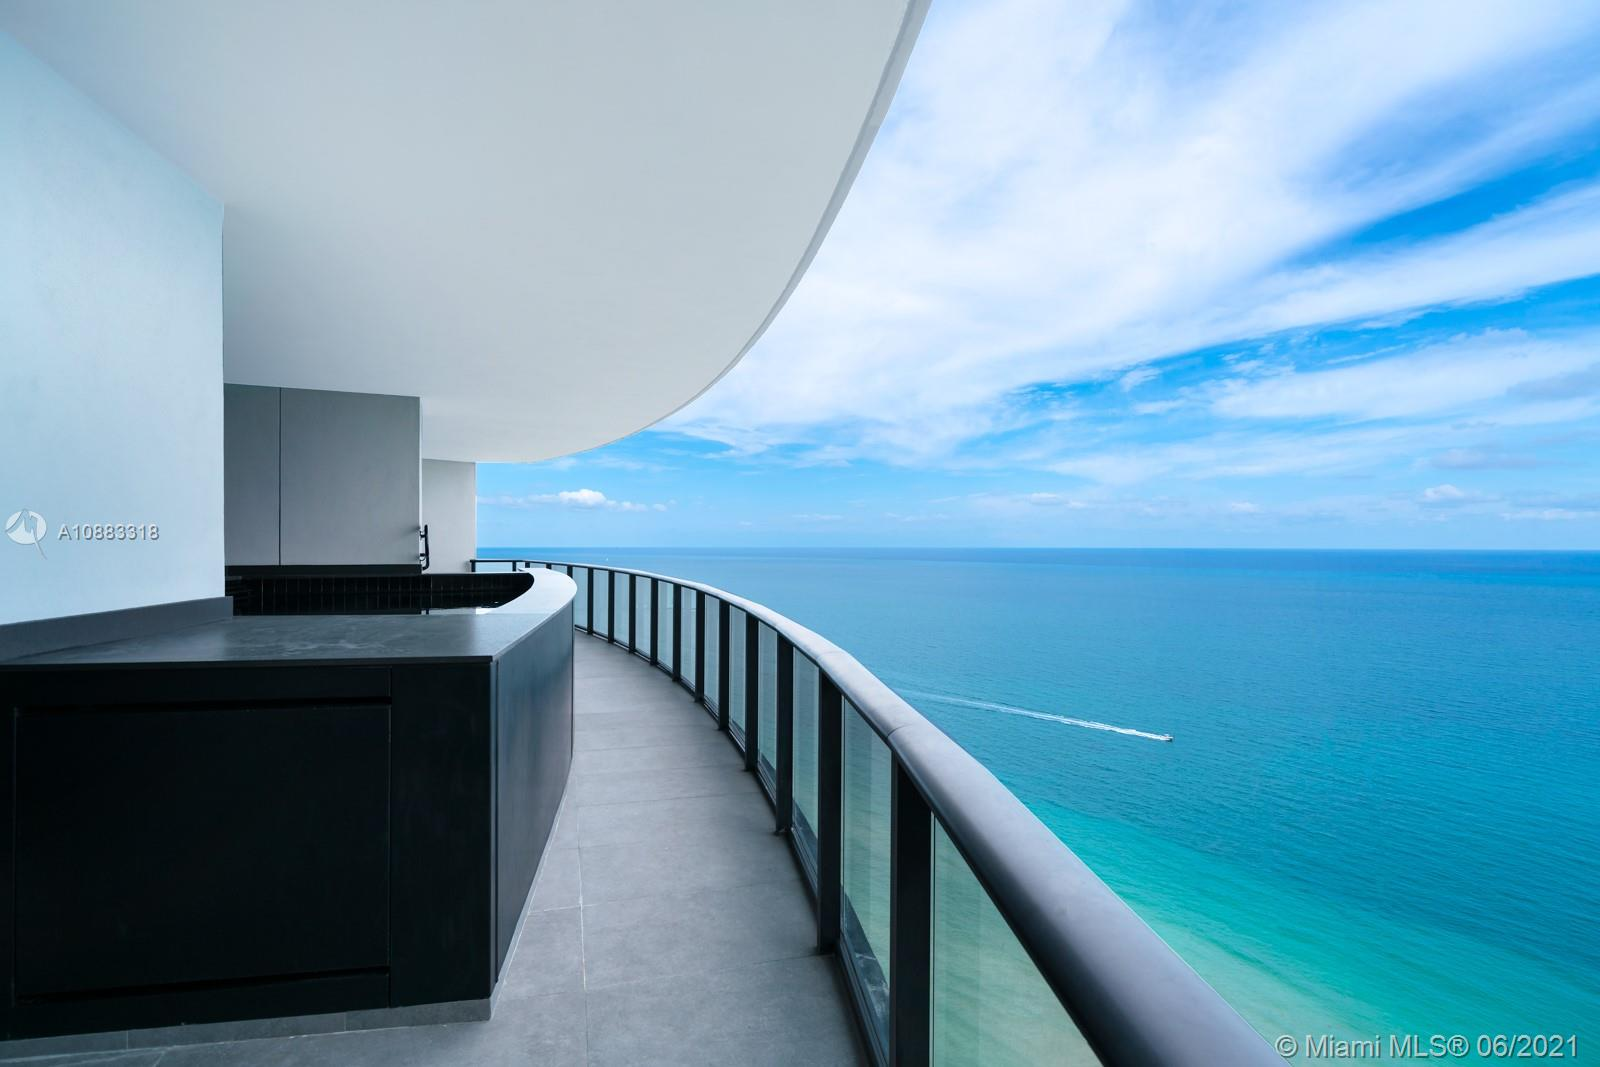 DRIVE YOUR CAR RIGHT INTO YOUR LIVING ROOM! This 3 bedroom apartment at Porsche Design Tower features a 2 car garage in the living room and a heated salt water pool/jacuzzi on the balcony. Enjoy living in the only building you can drive into your apartment with your car. Residence includes Miele appliances, private elevator, private restaurant with in room dining, building concierge, car concierge, full beach service, two pools, spa, car simulator, sports simulator, movie theatre, salon, and party room. Enjoy five star resort like living in one of the most technologically advanced, private, and secure building in the world!